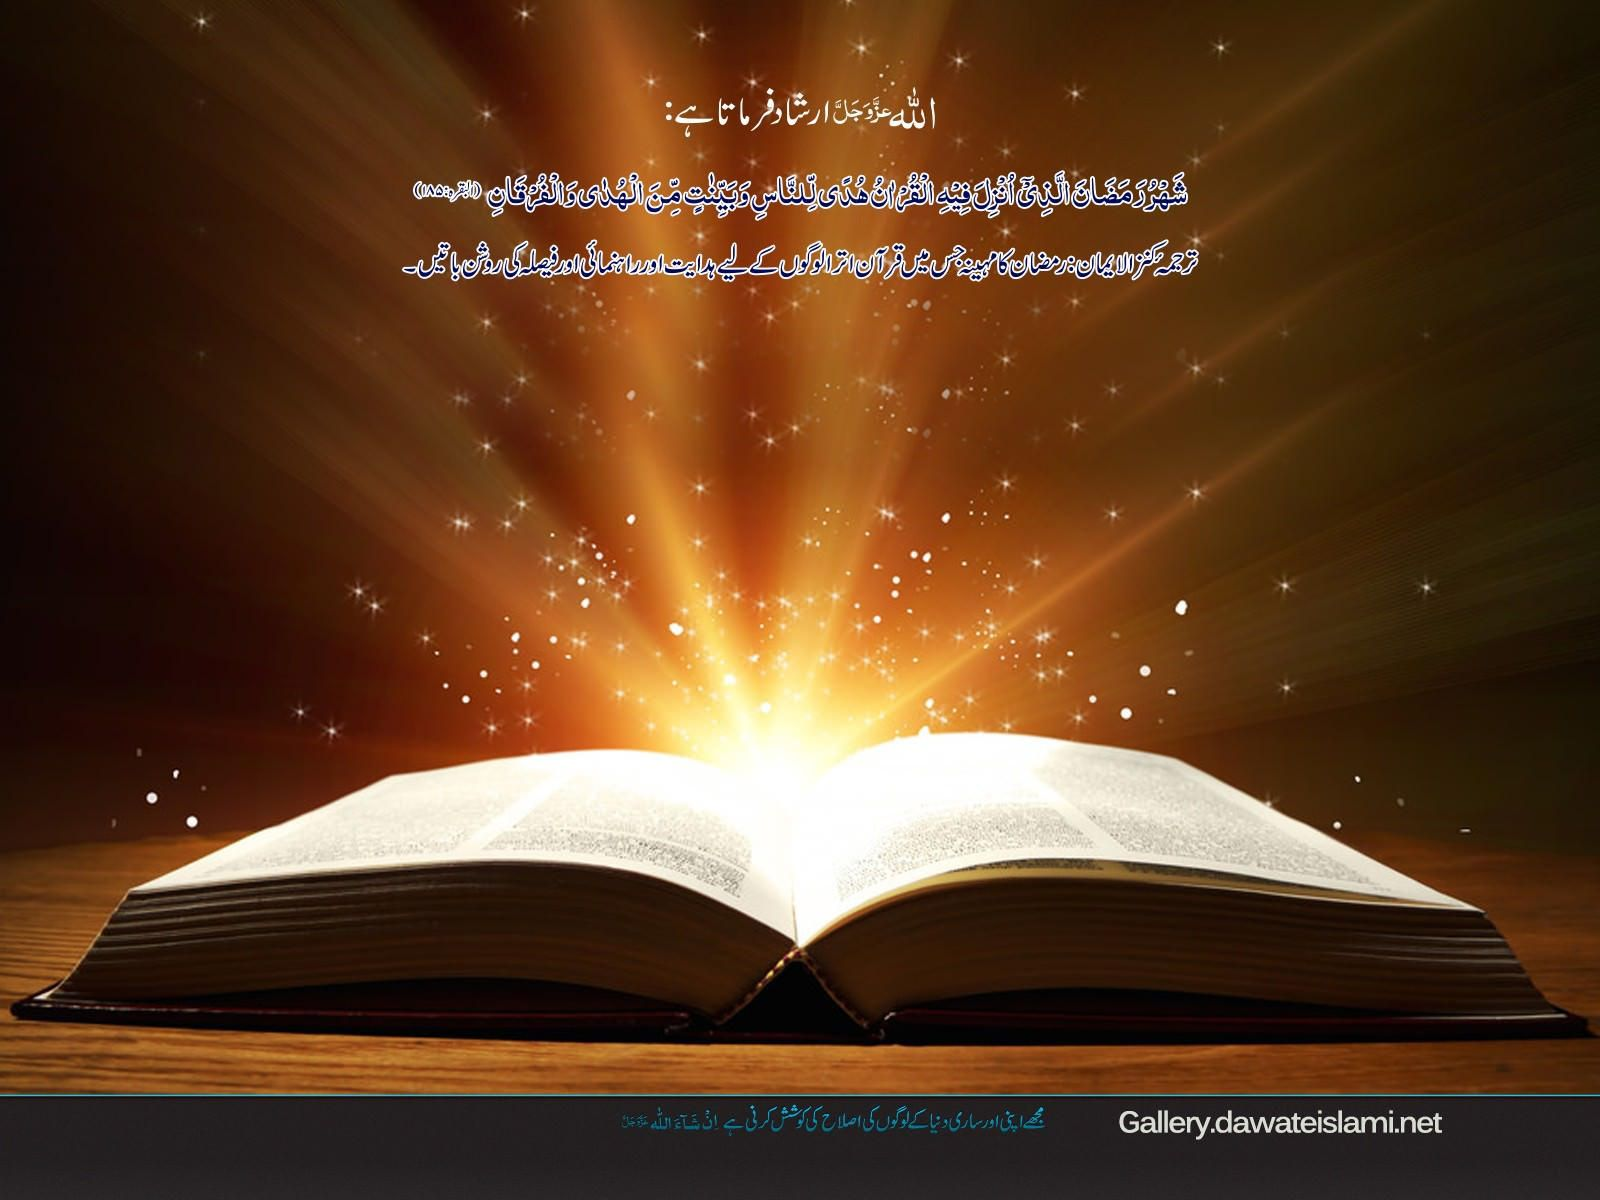 Quran Wallpapers Top Free Quran Backgrounds WallpaperAccess